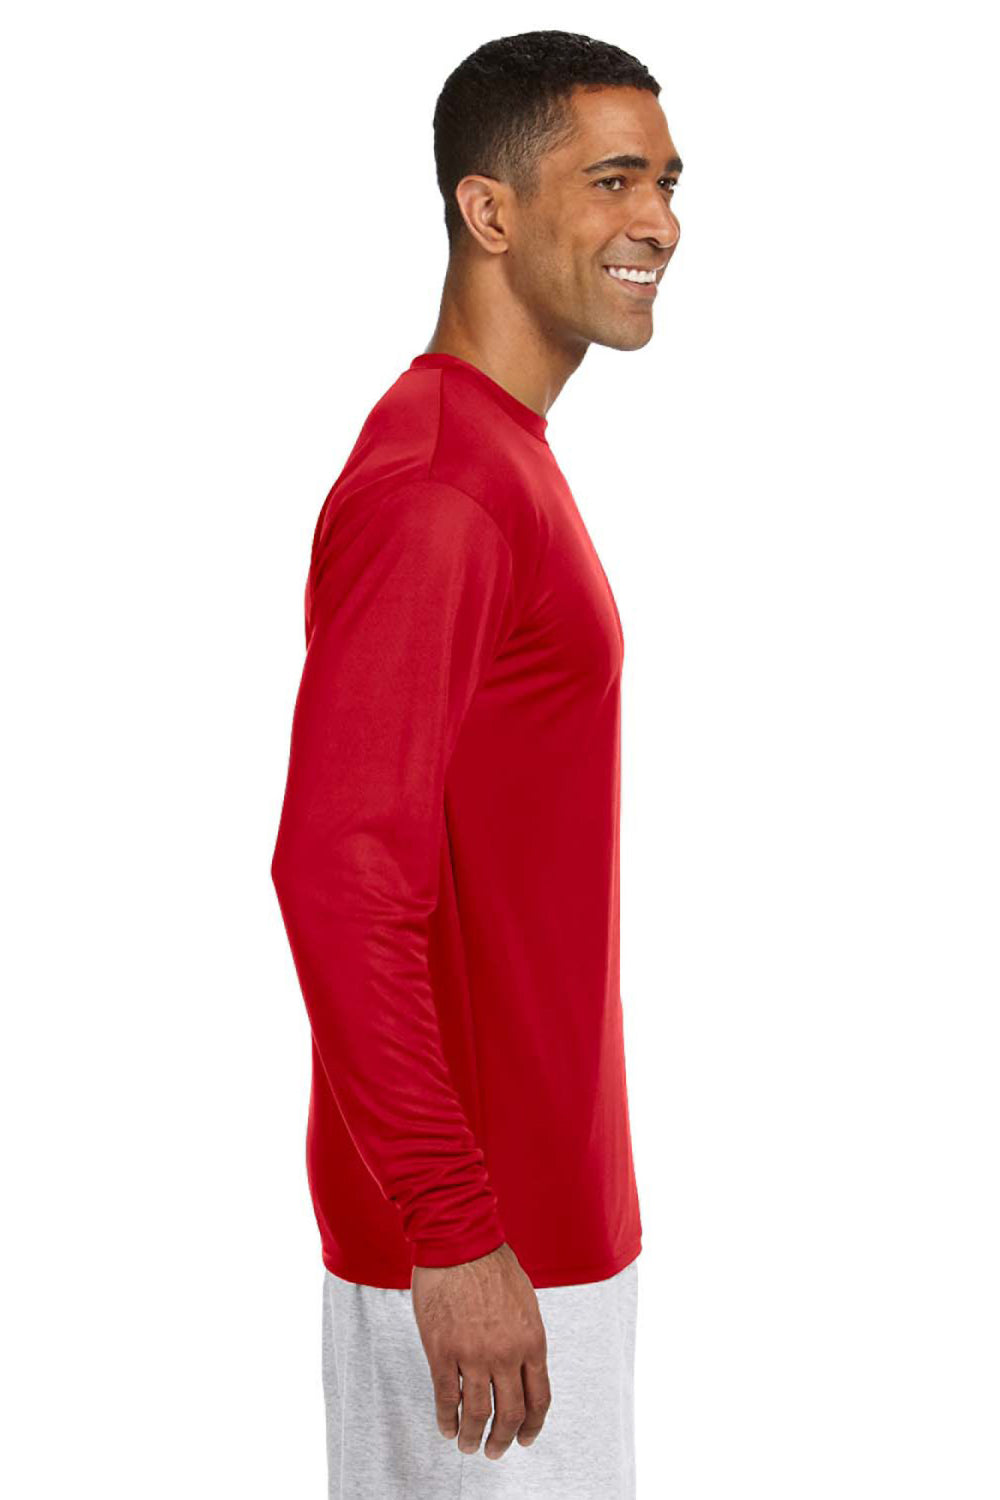 A4 N3165 Mens Cooling Performance Moisture Wicking Long Sleeve Crewneck T-Shirt Red Side